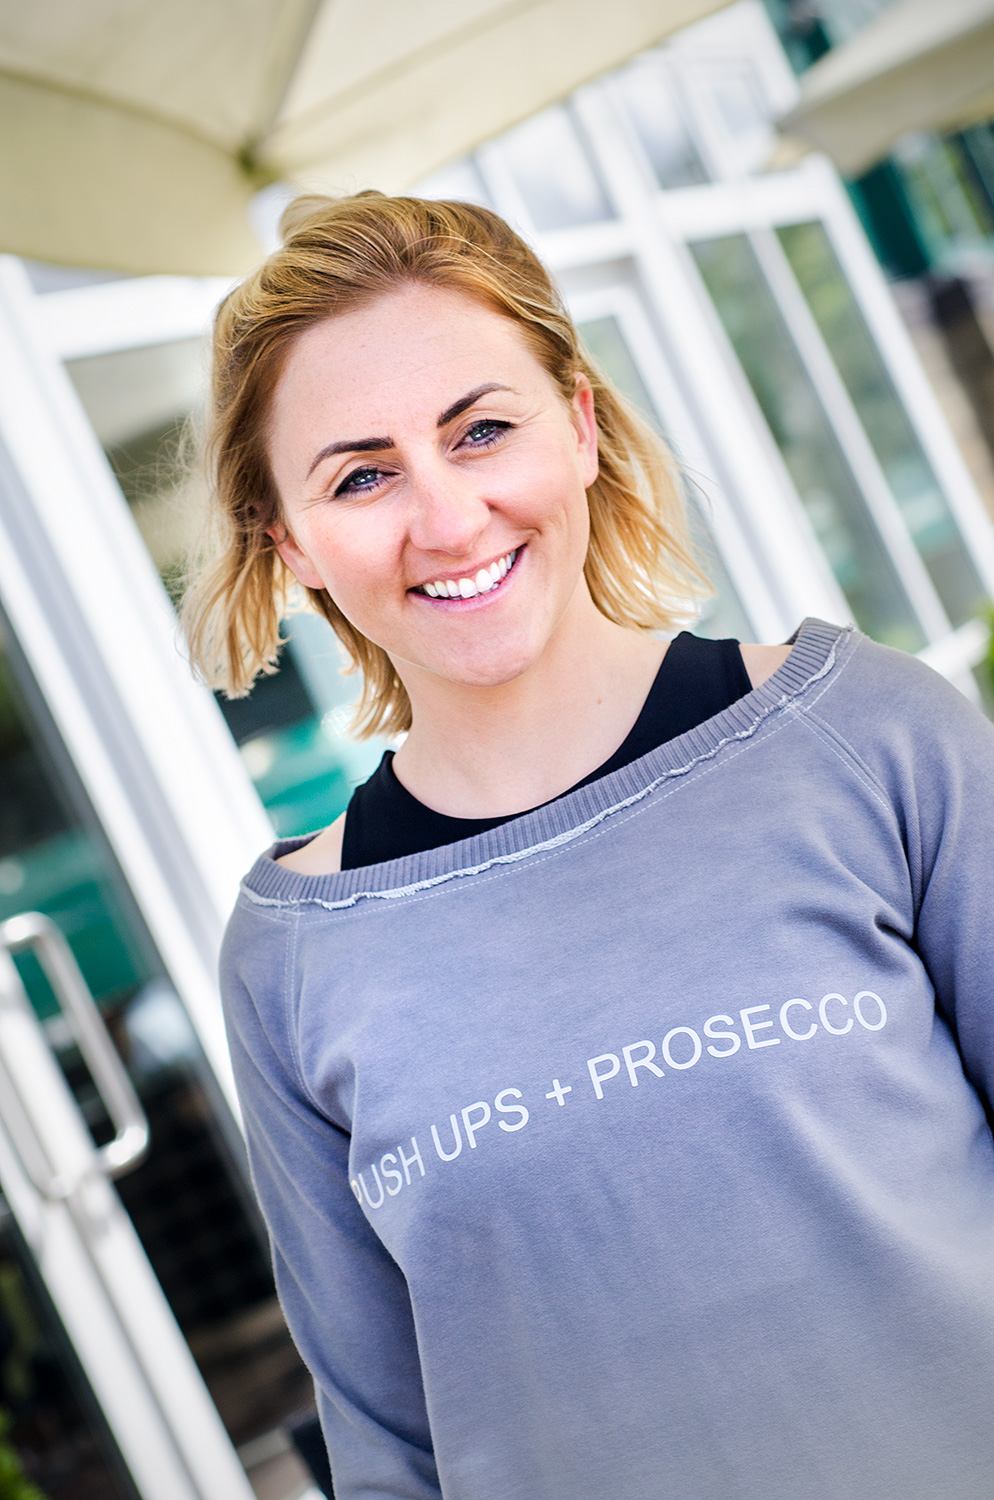 'PUSH UPS + PROSECCO' Sweatshirt: Large